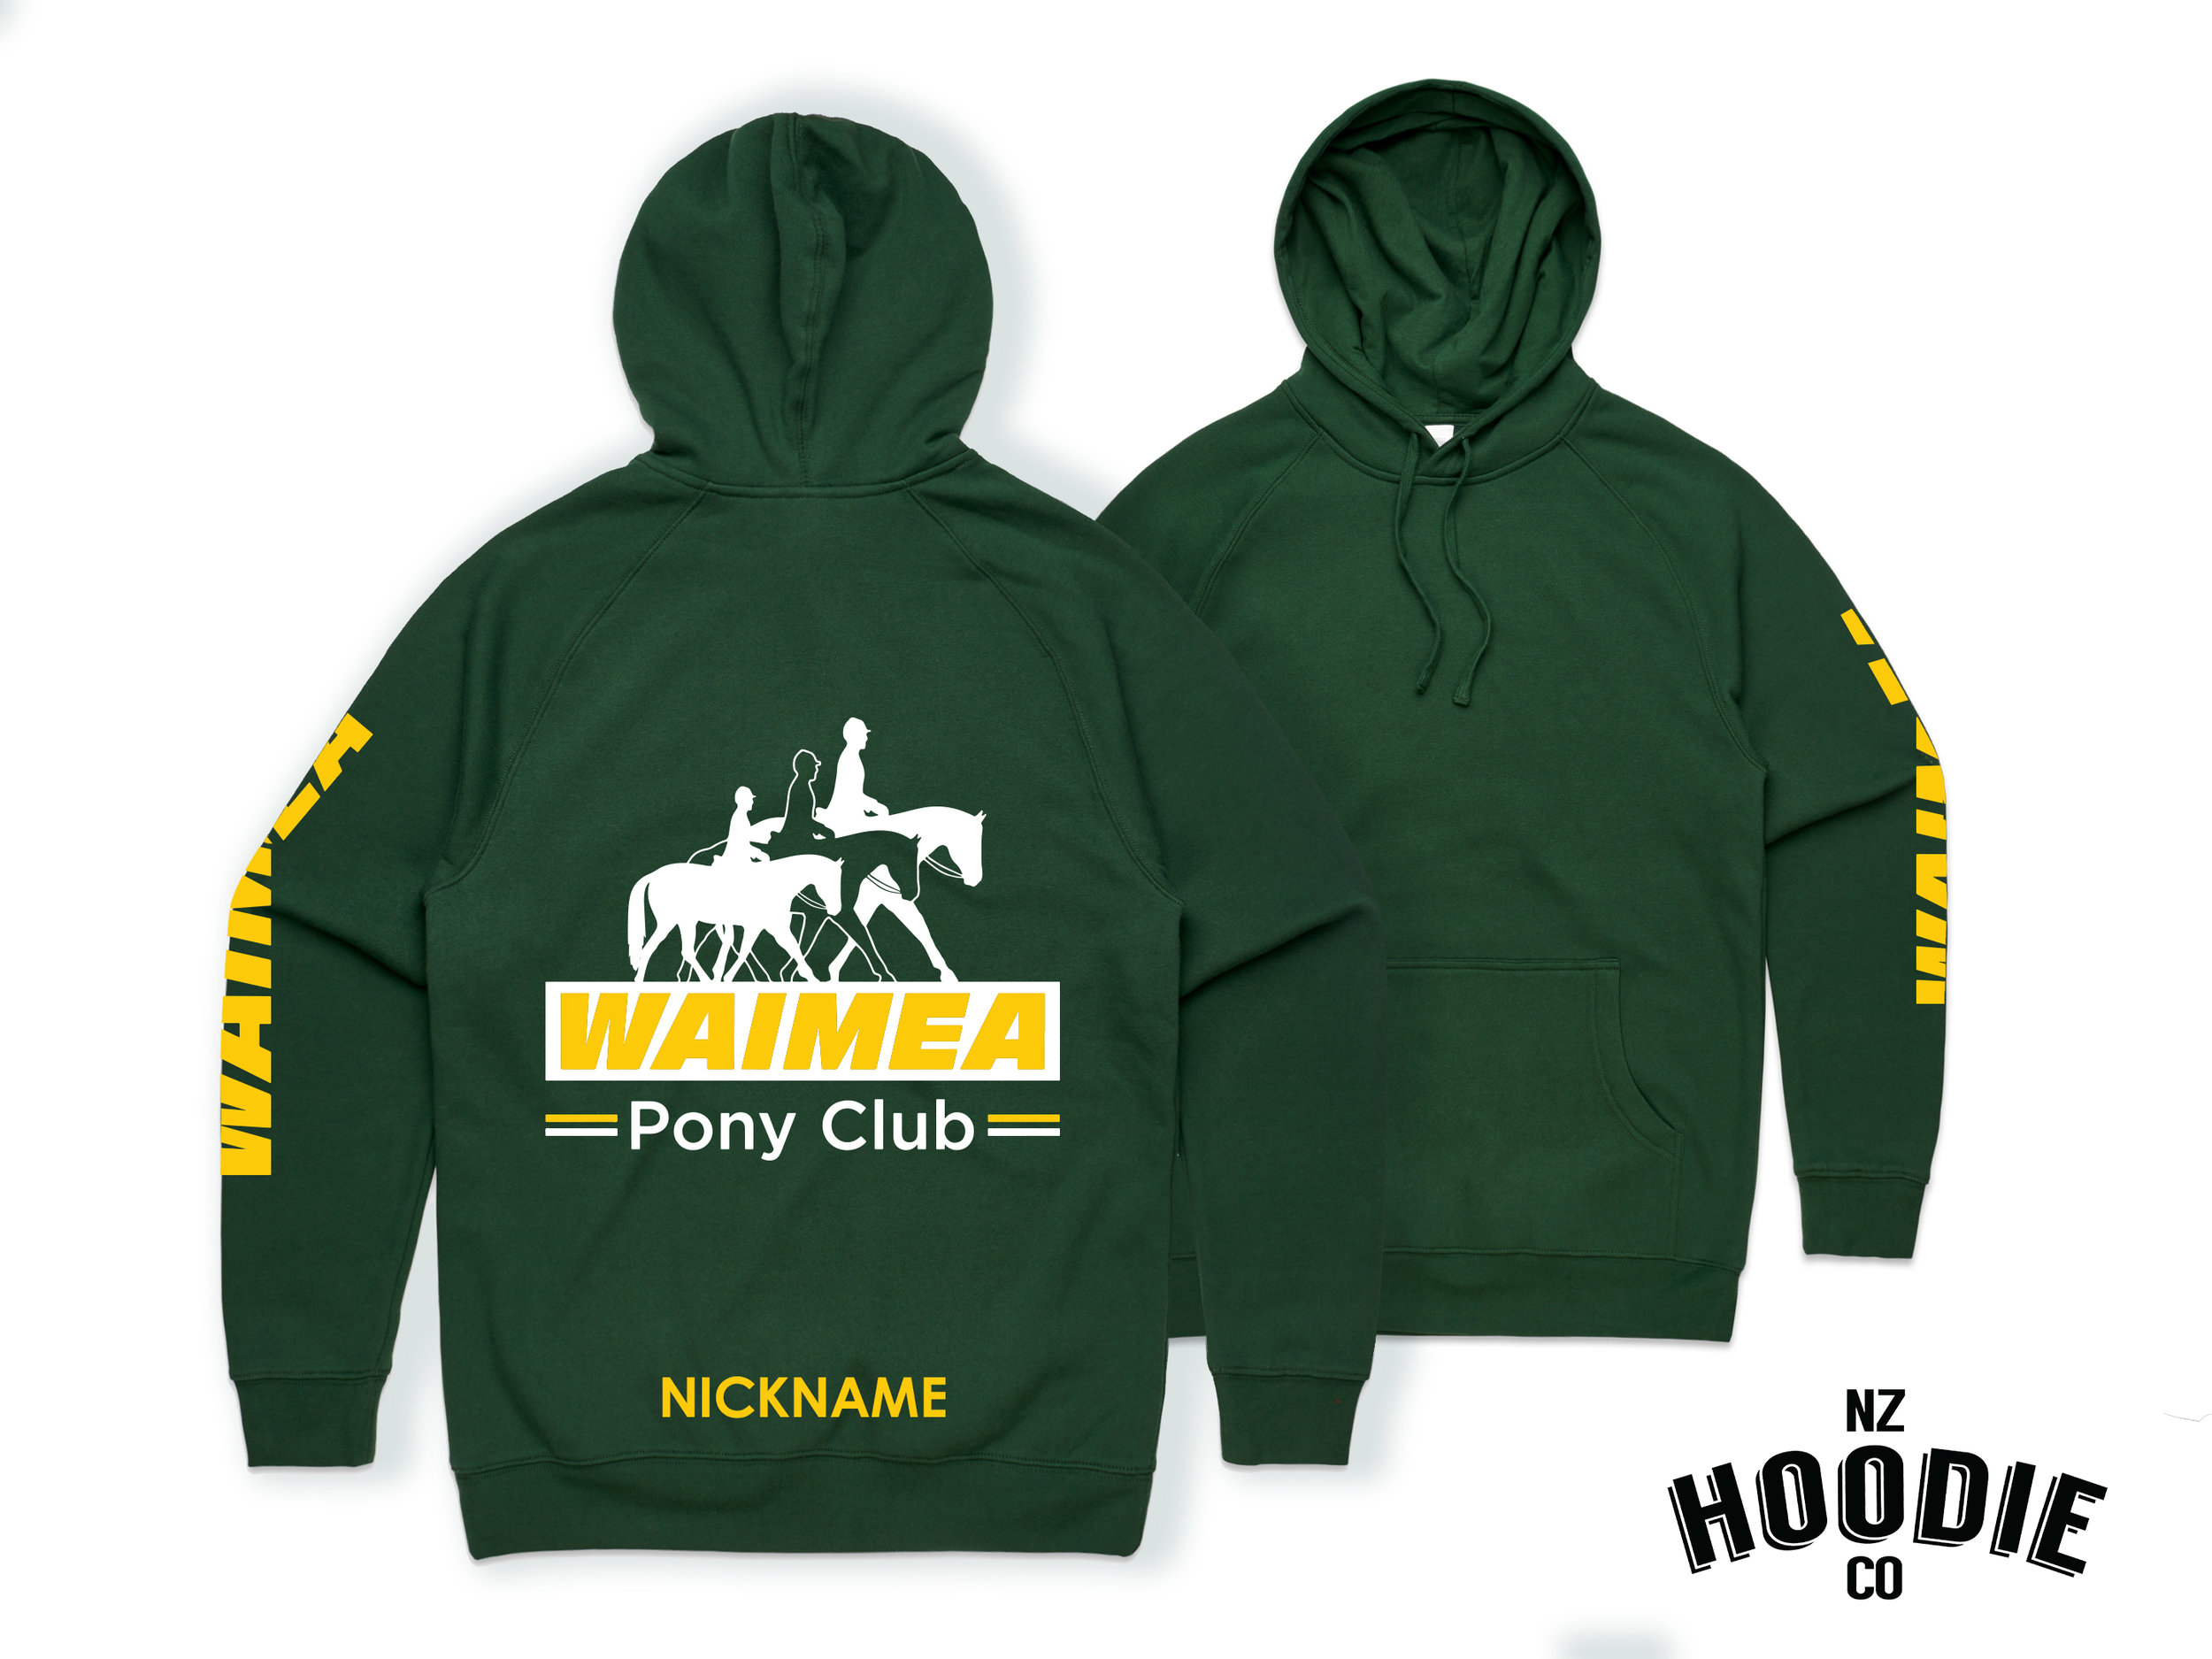 Waimea Pony Club mock up.jpg